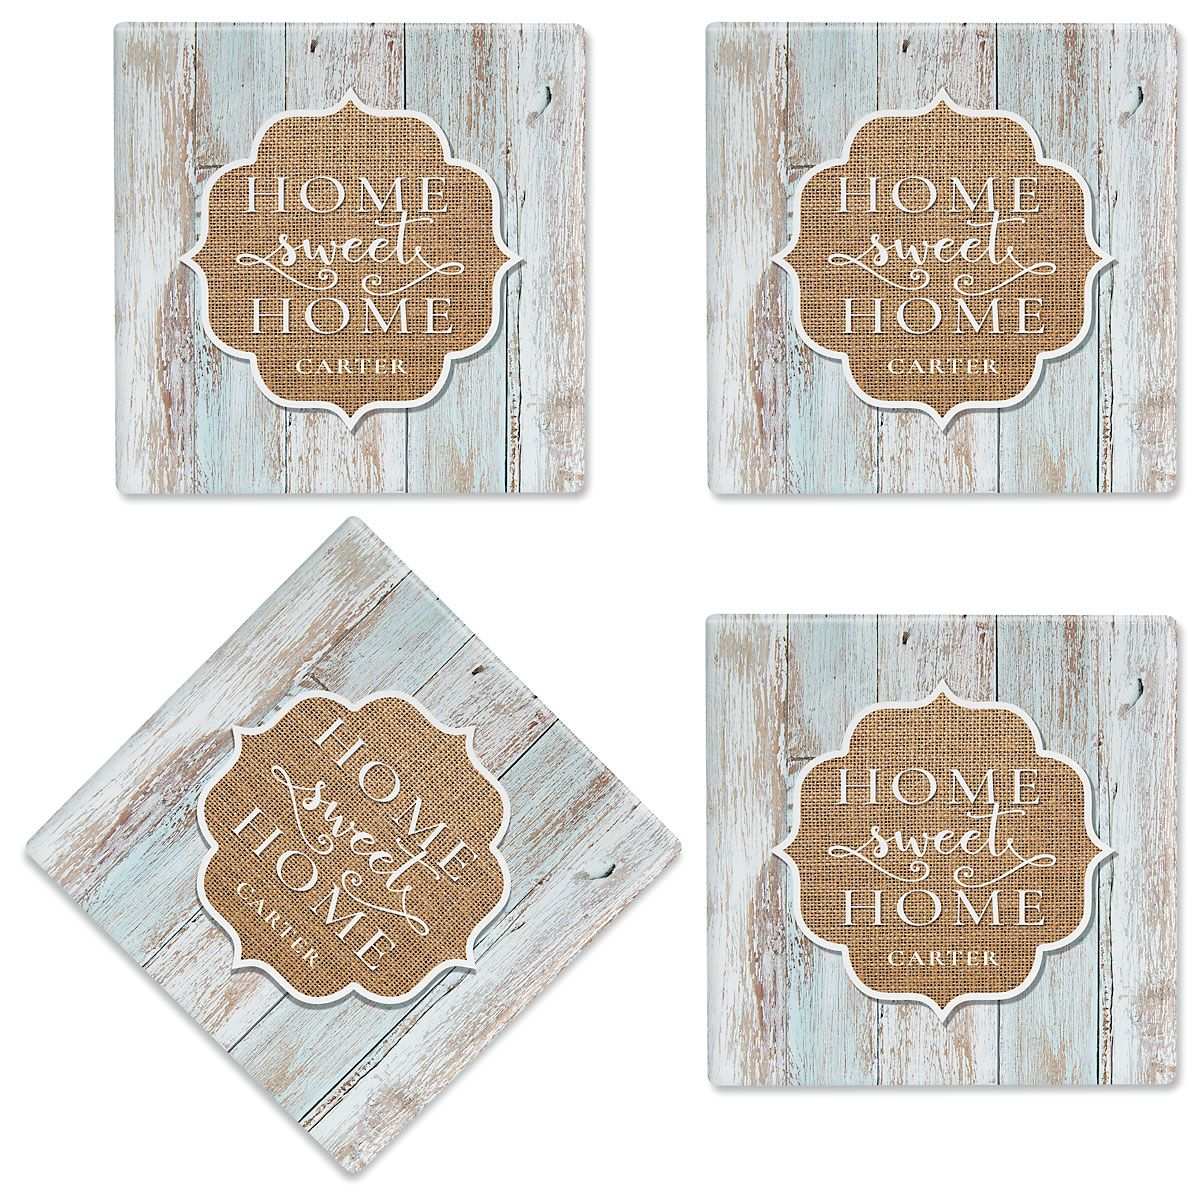 Home Sweet Home Personalized Ceramic Coasters